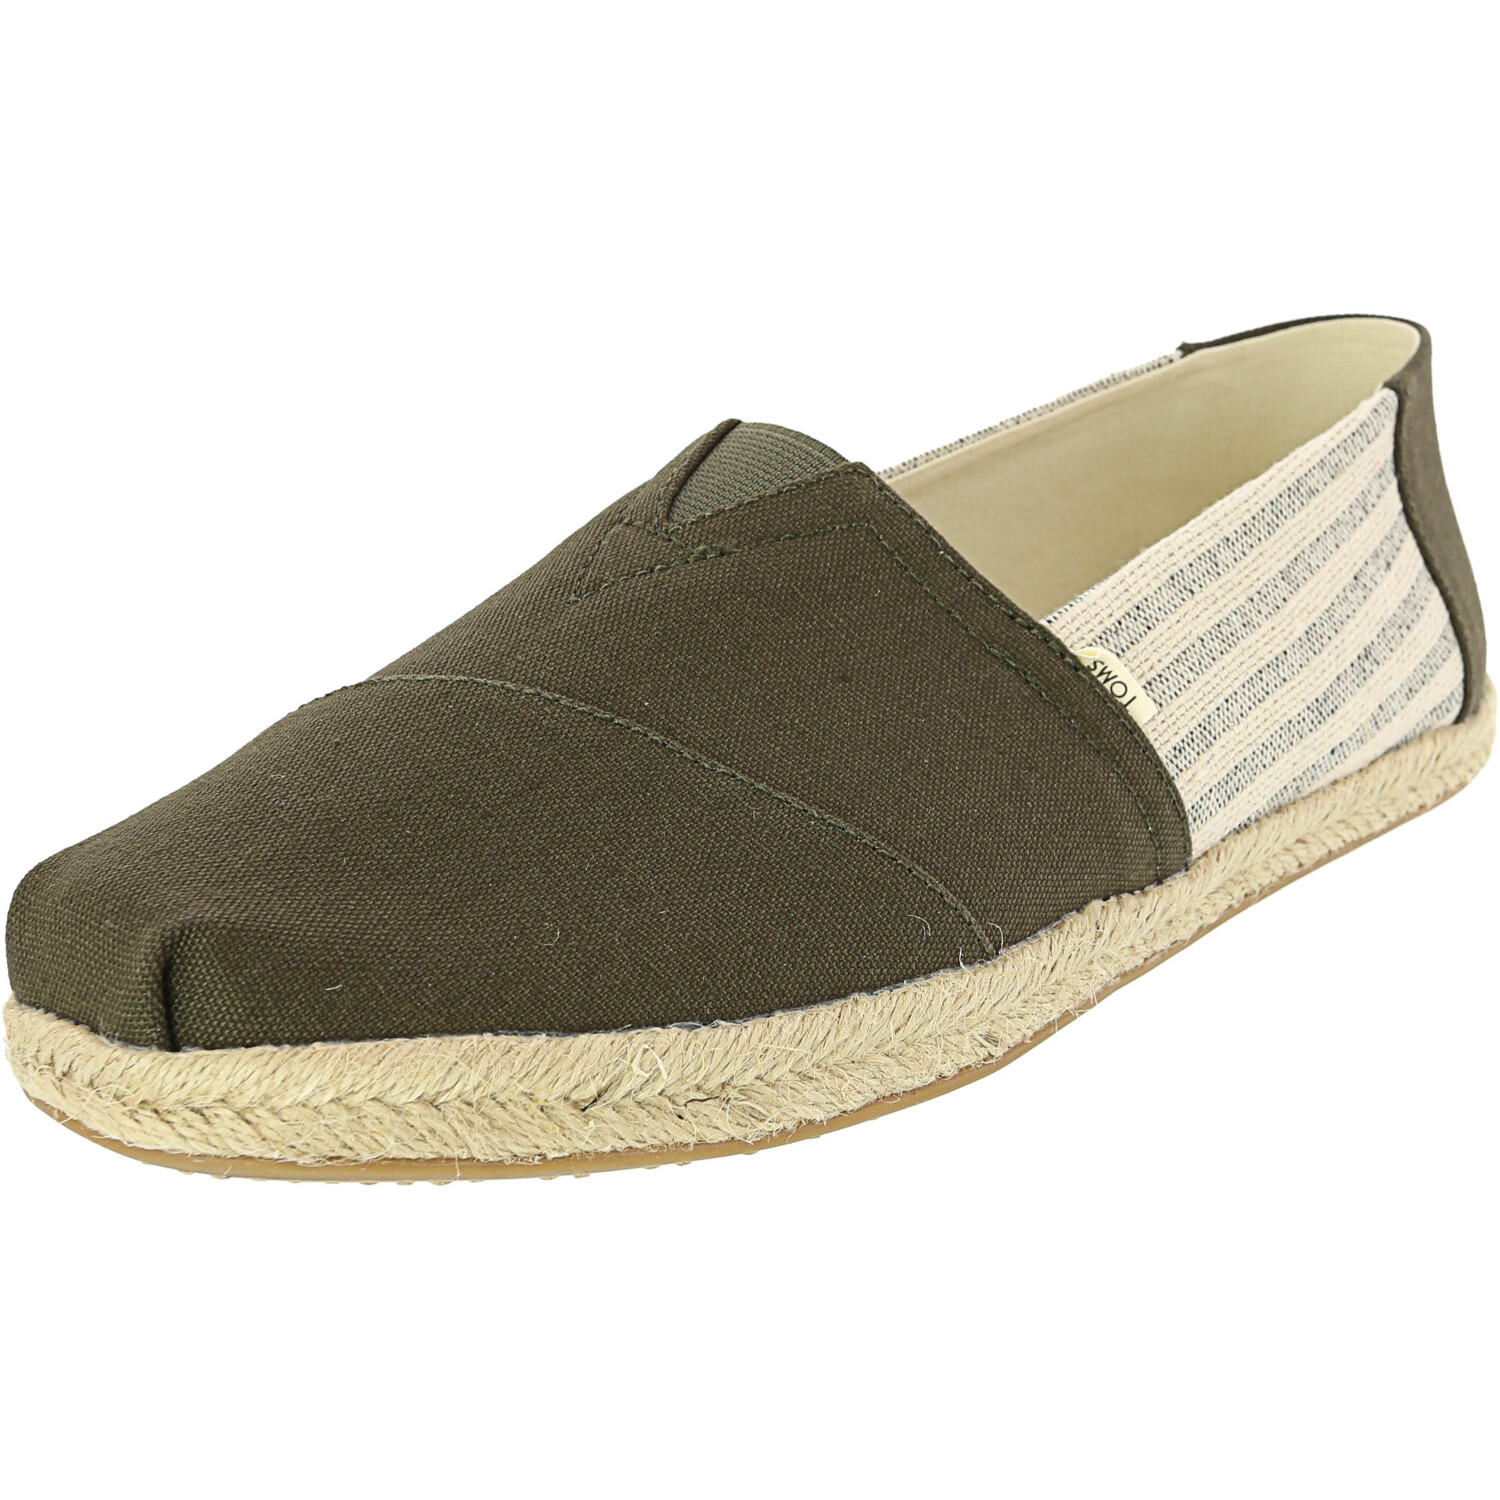 Toms Men's Classic Rope Sole Tarmac Ivy League Stripes Ankle-High Fabric Slip-On Shoes - 11.5M